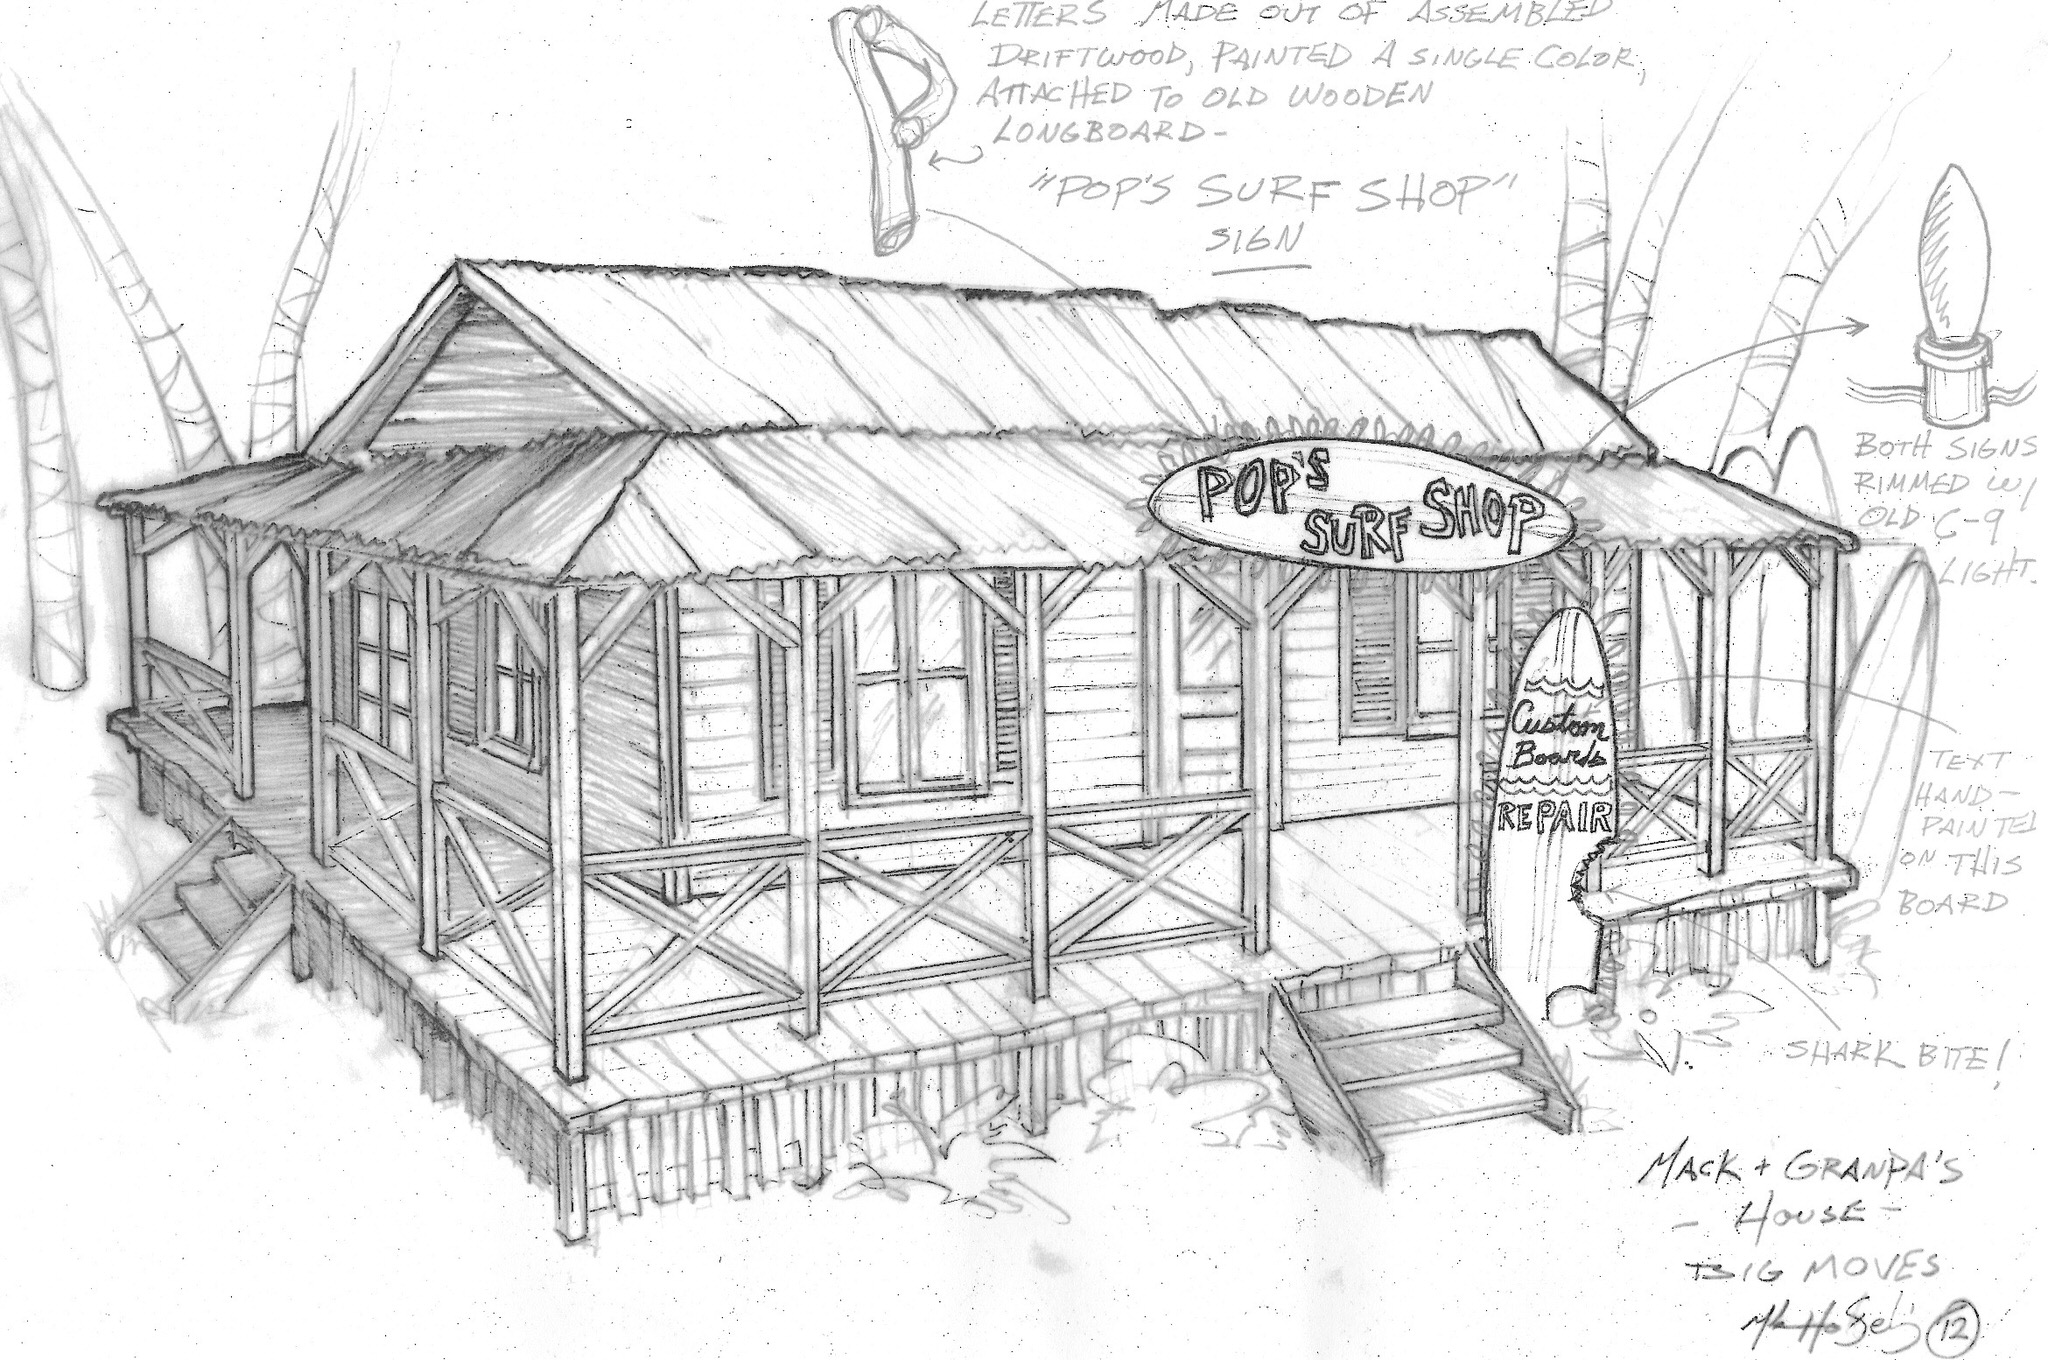 Here's my first sketch Pop's Surf Shop for Teen Beach Movie.